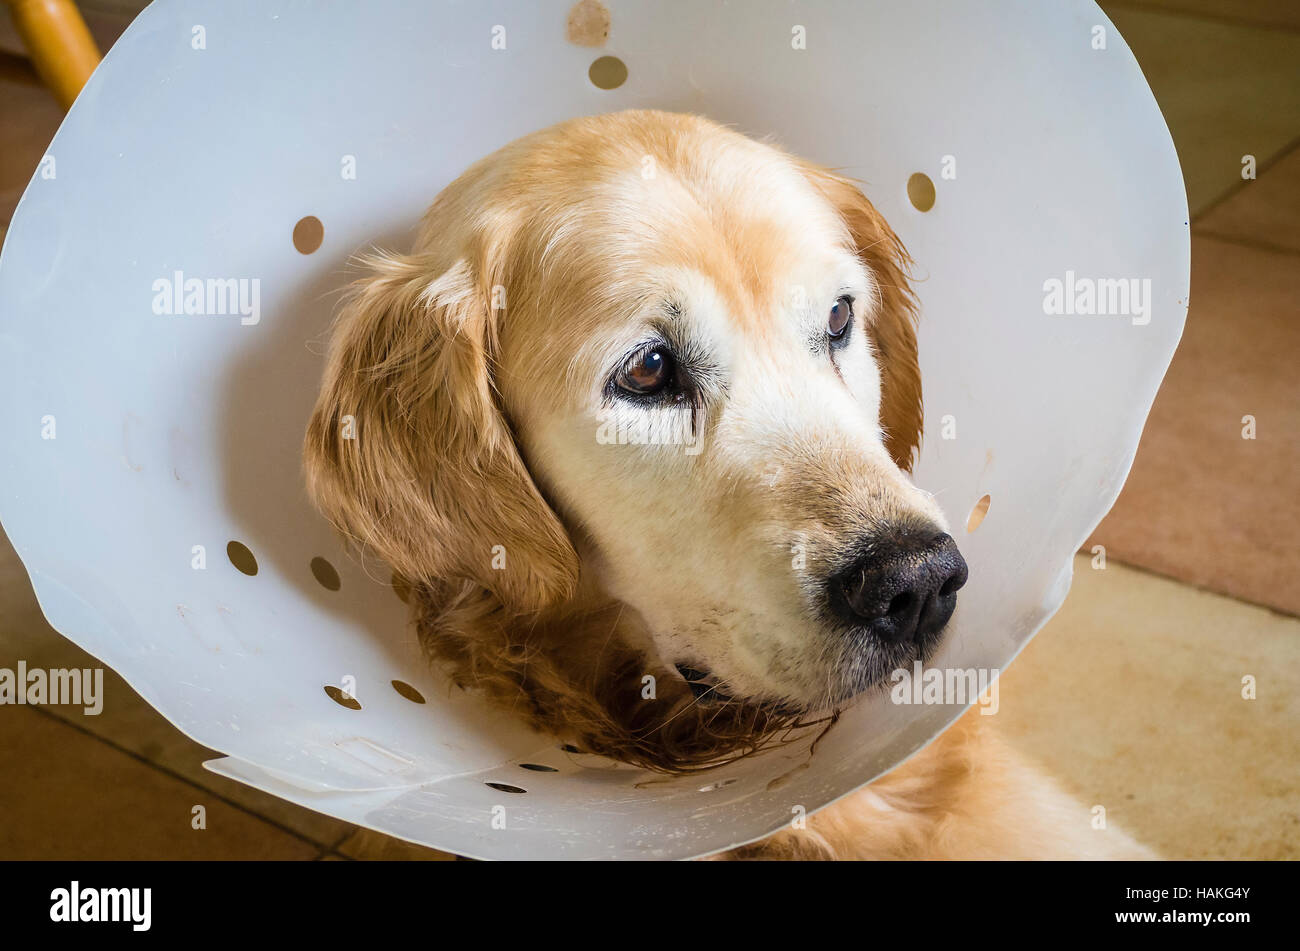 Golden Retriever dog wearing a protective surgical collar after an abdominal operation - Stock Image